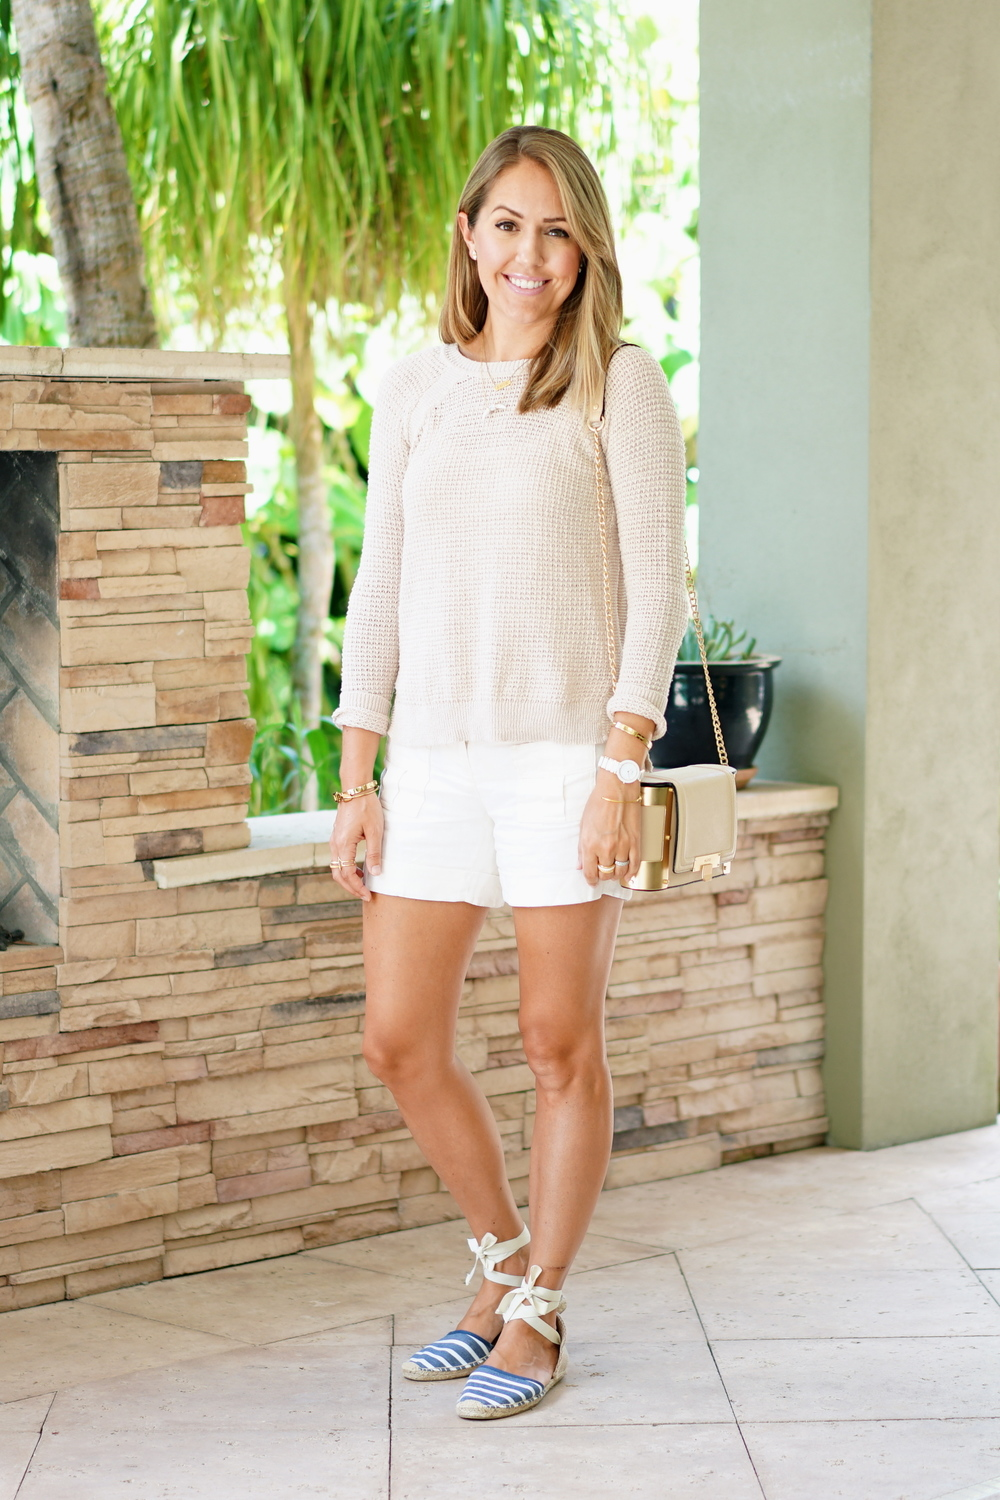 Ivory sweater, linen shorts, striped espadrilles